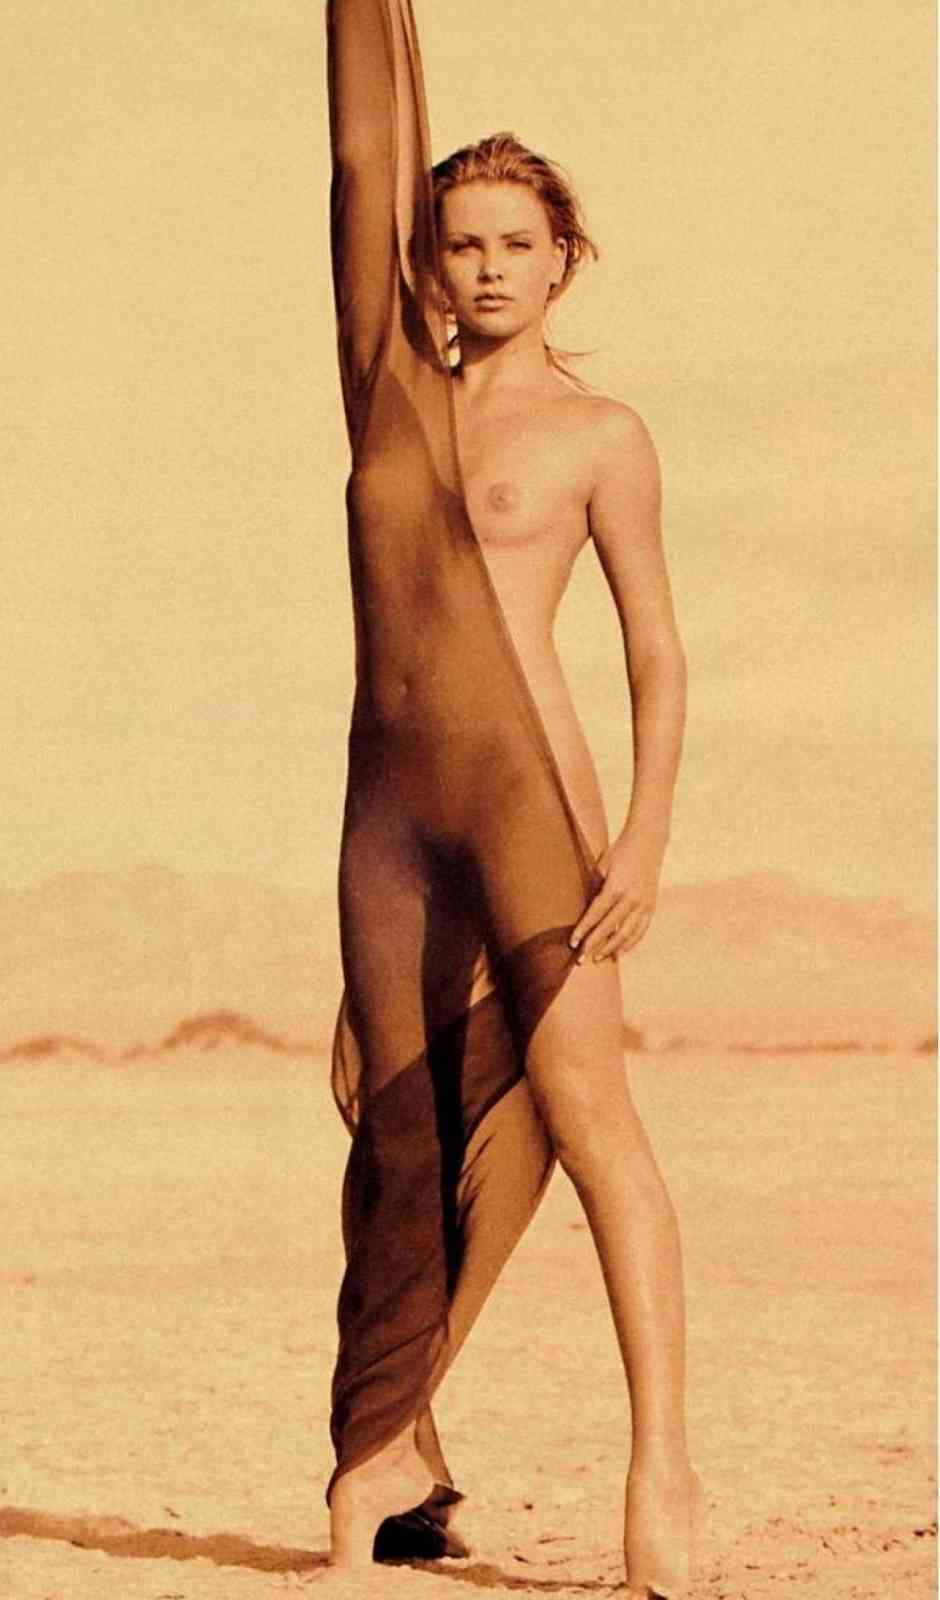 charlize theron pussy attractive sexy topless nudes